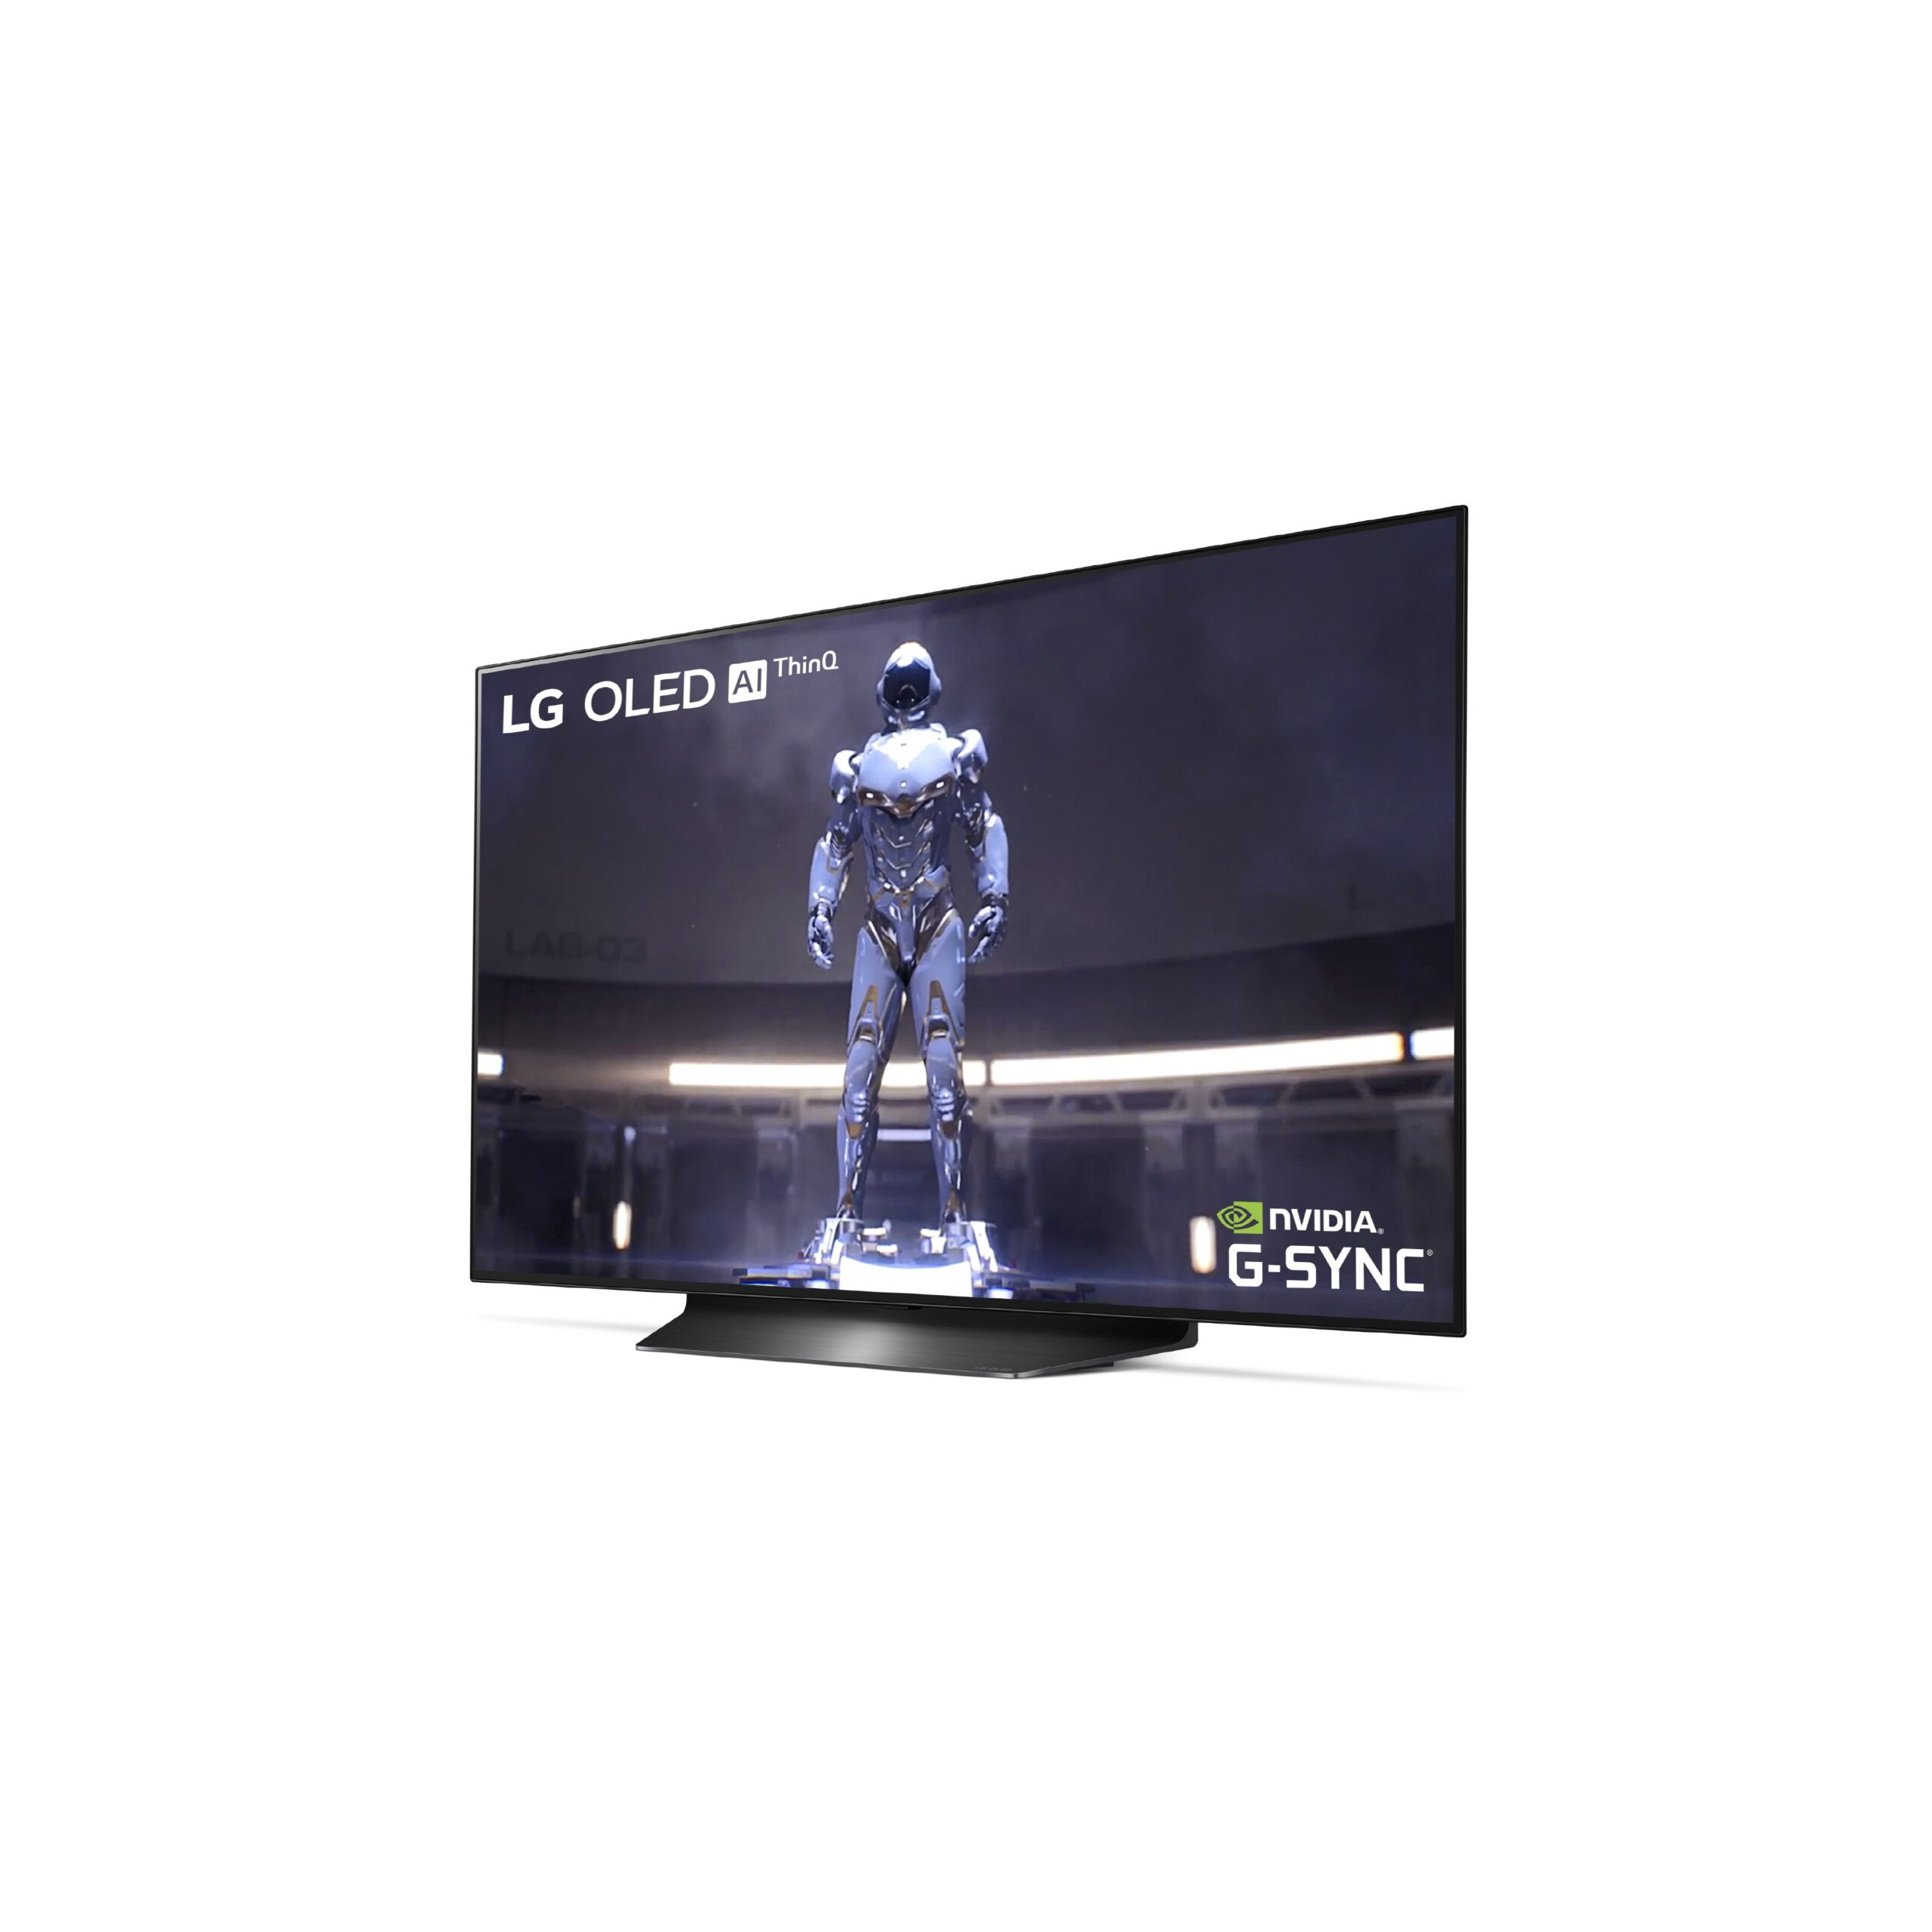 Right-side view of LG's 48-inch OLED TV model CX, with the LG OLED AI ThinQ and NVIDIA G-Sync logos in opposite corners of the TV's display